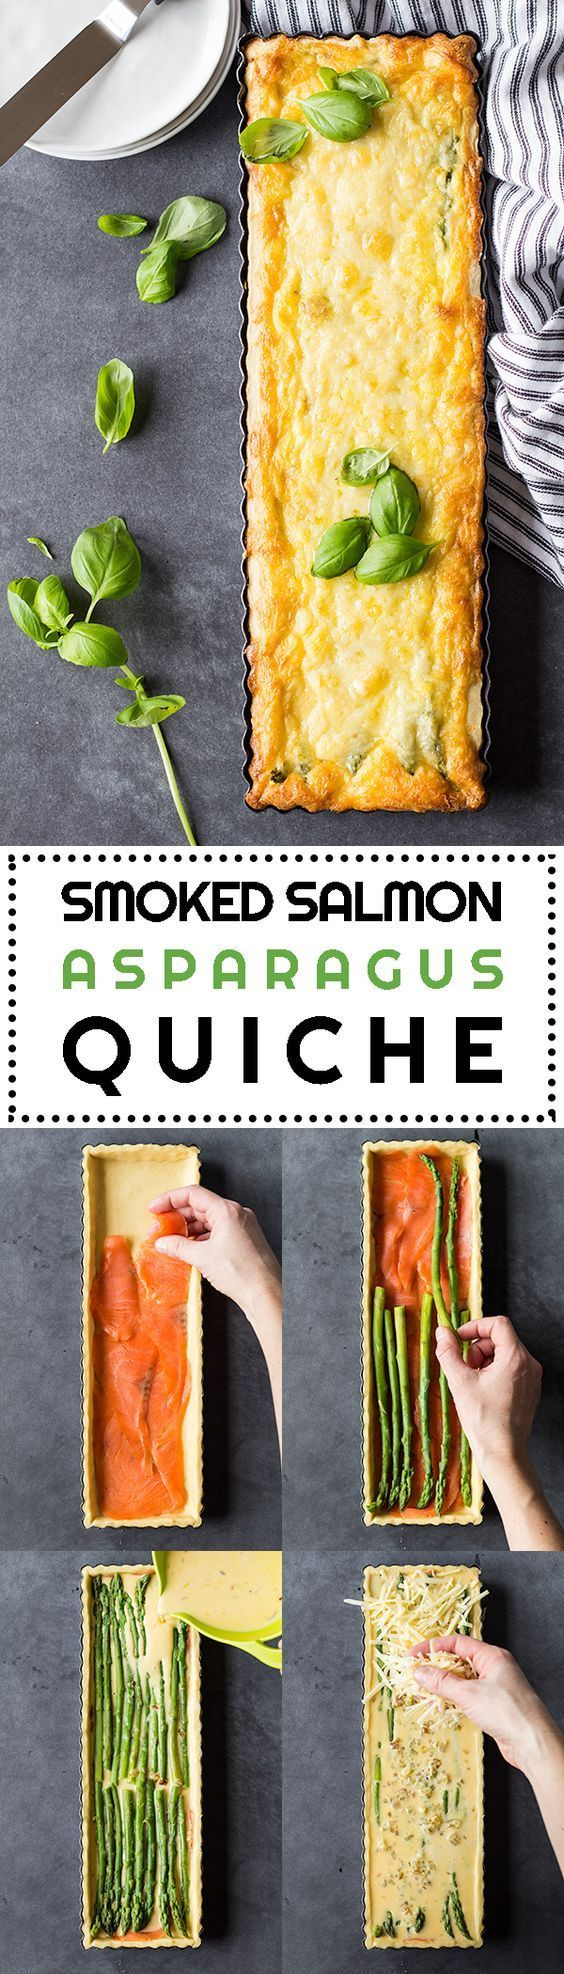 A Smoked Salmon Asparagus Quiche sure to make you fall in love with quiches once and for all. A healthy delicious lunch or dinner full of protein and flavor!